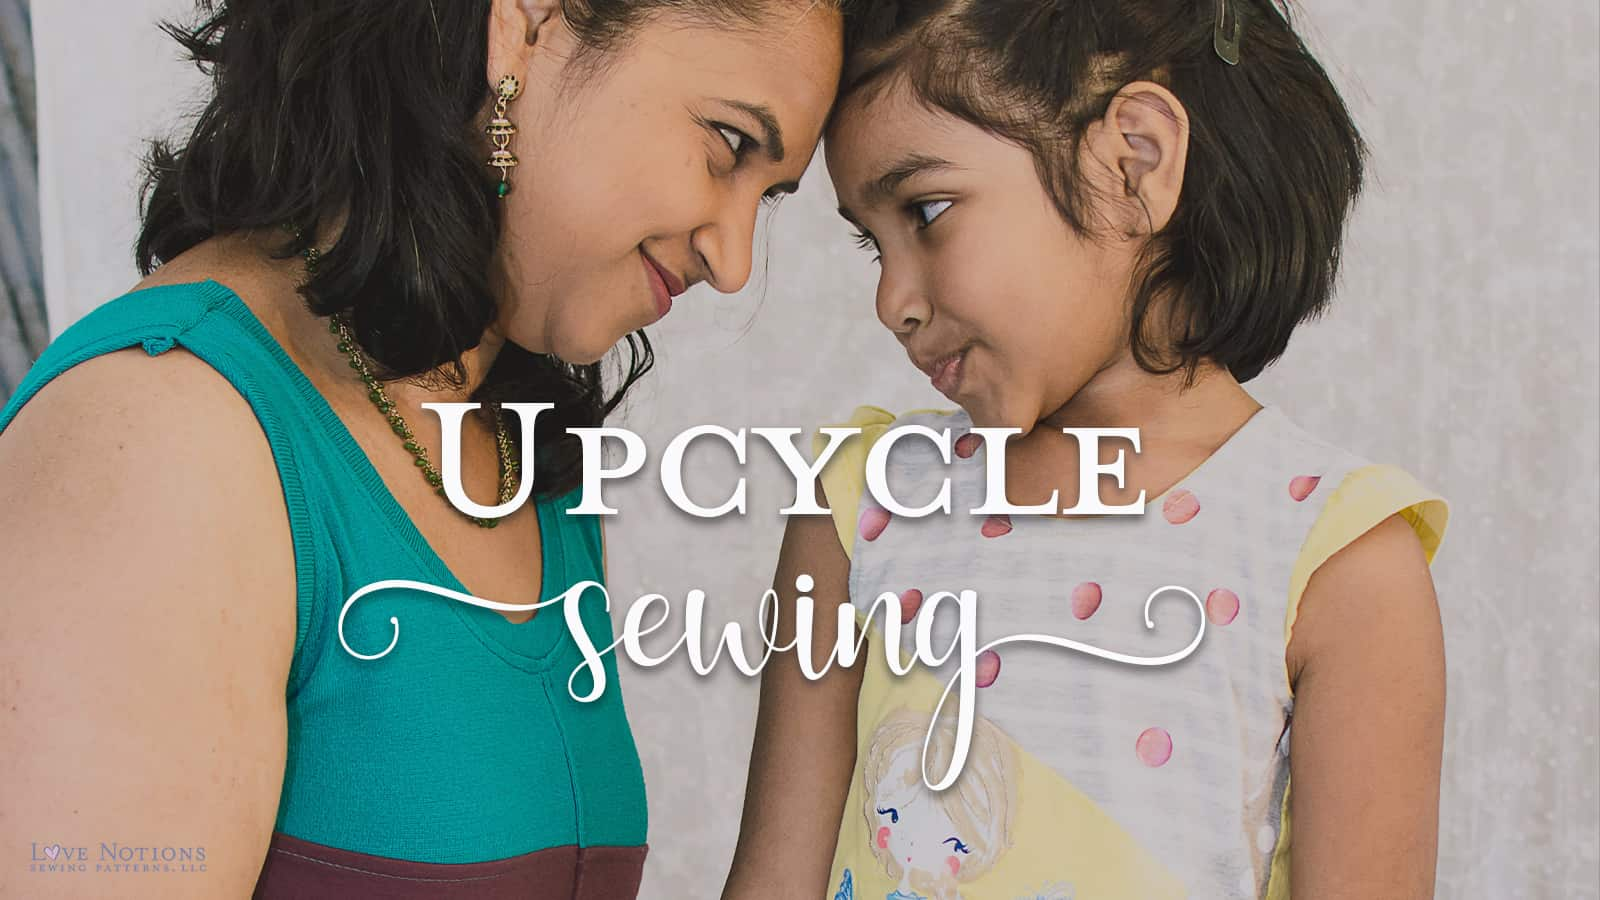 upcycle sewing